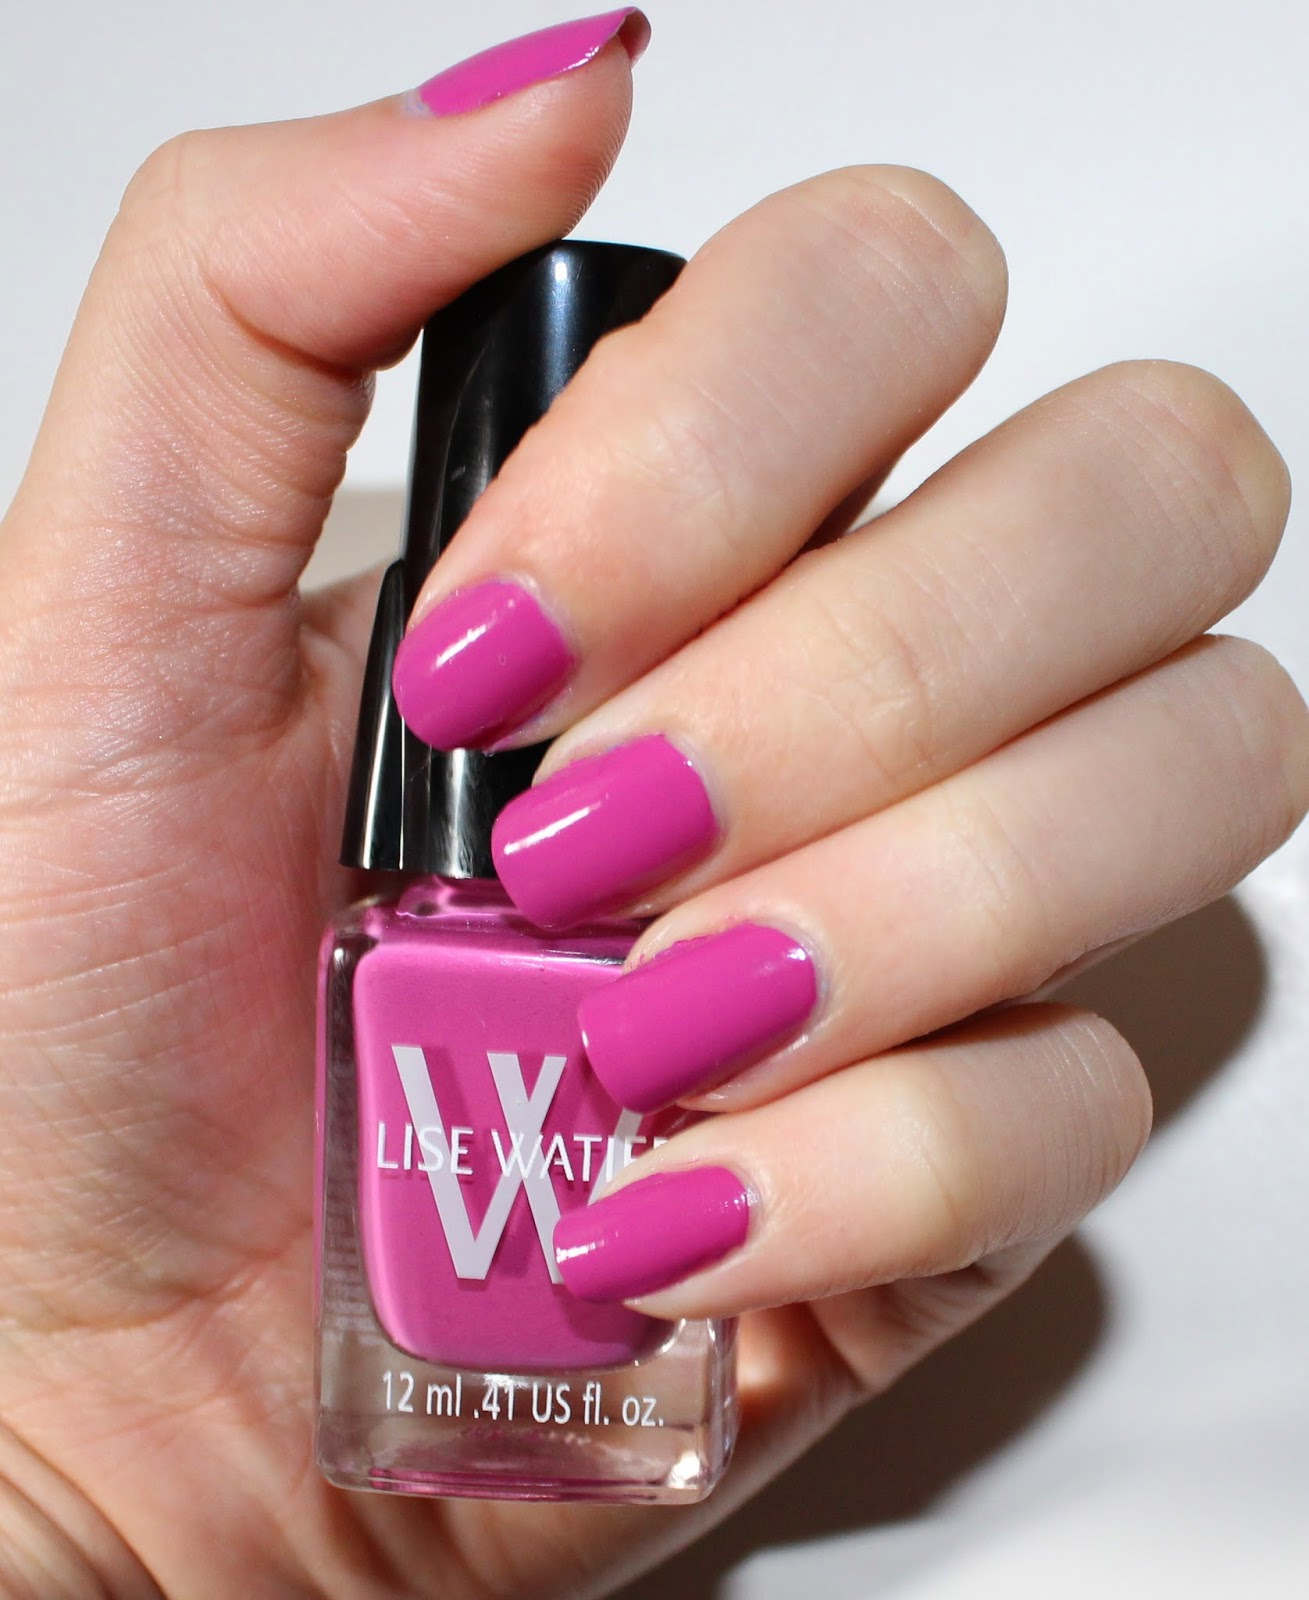 Lise Watier Light Cap Nail Lacquer in Rose Eden